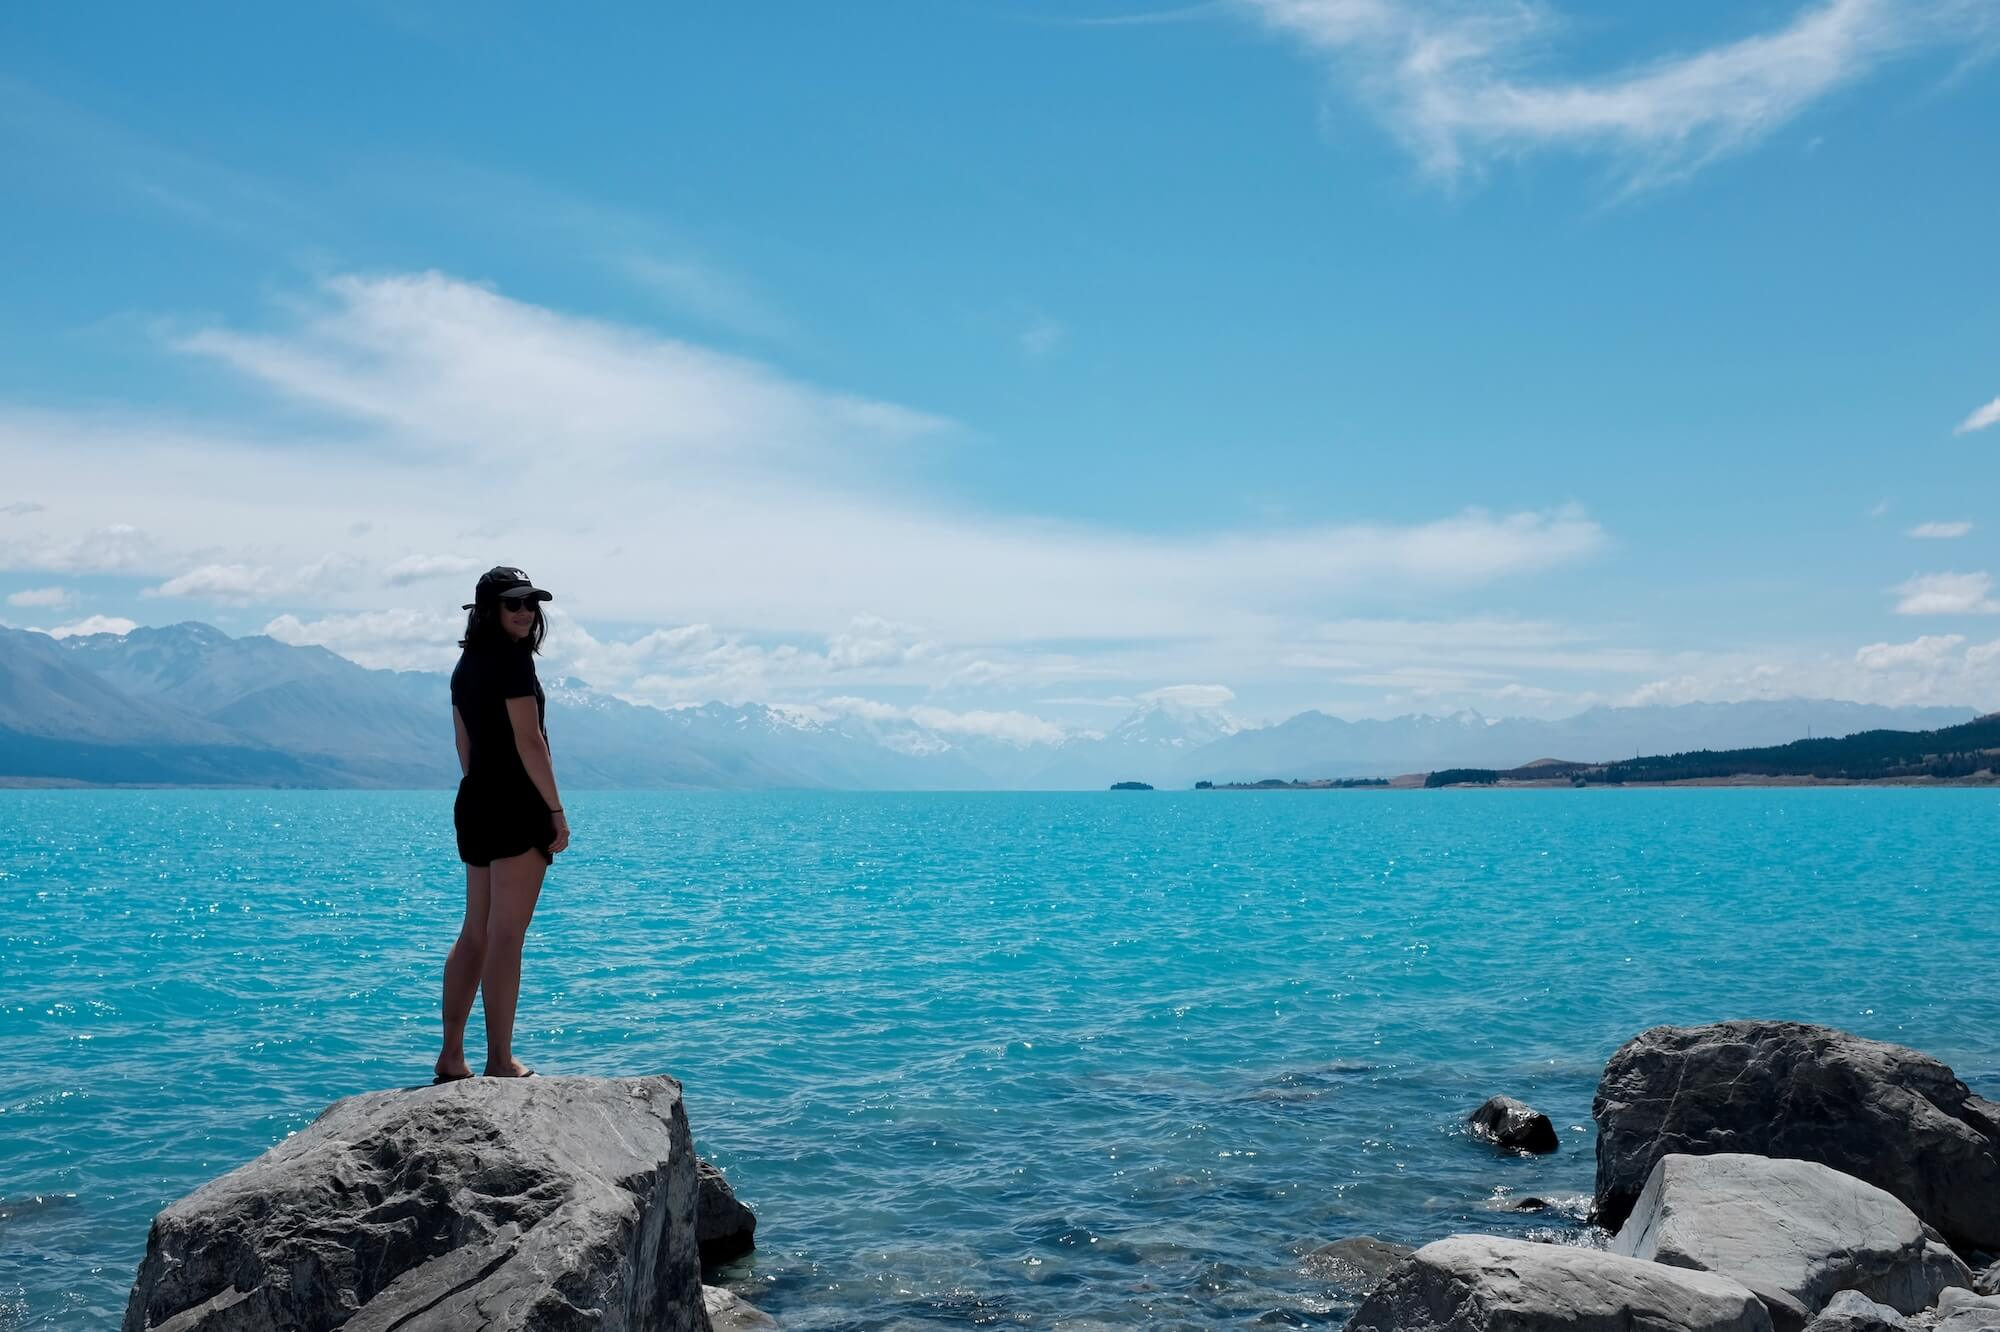 Kylea and Lake Pukaki